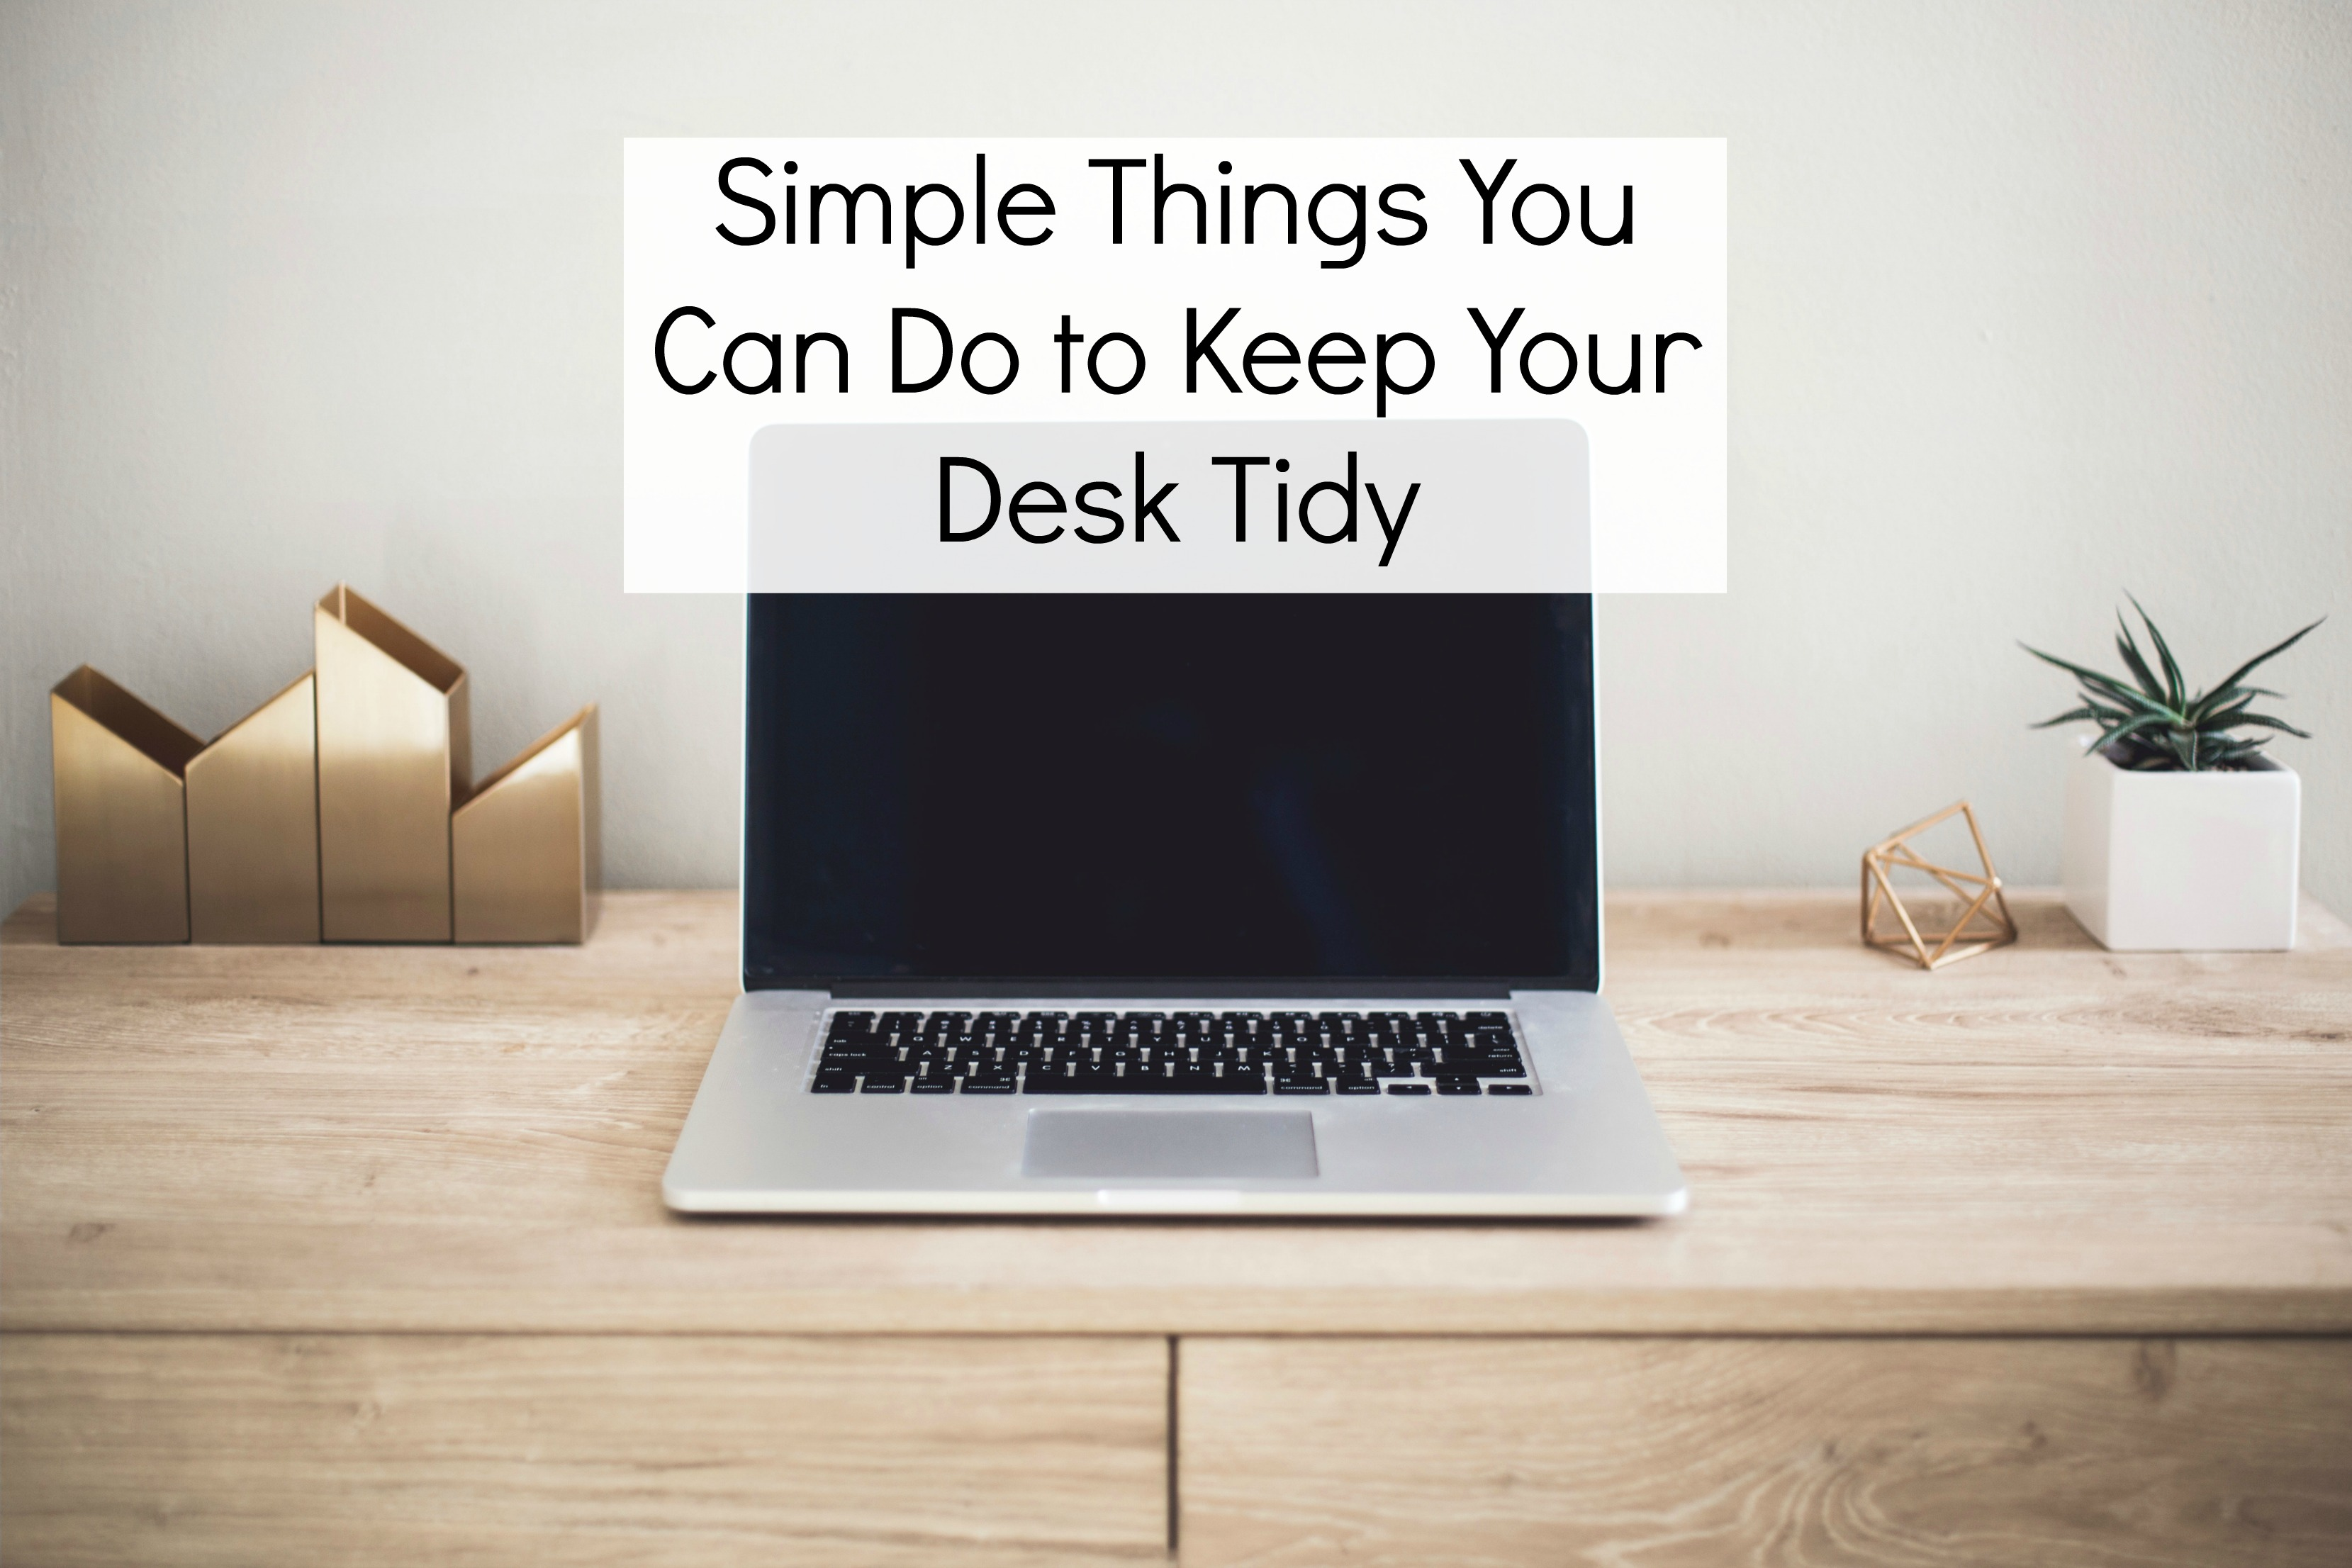 Simple Things You Can Do to Keep Your Desk Tidy